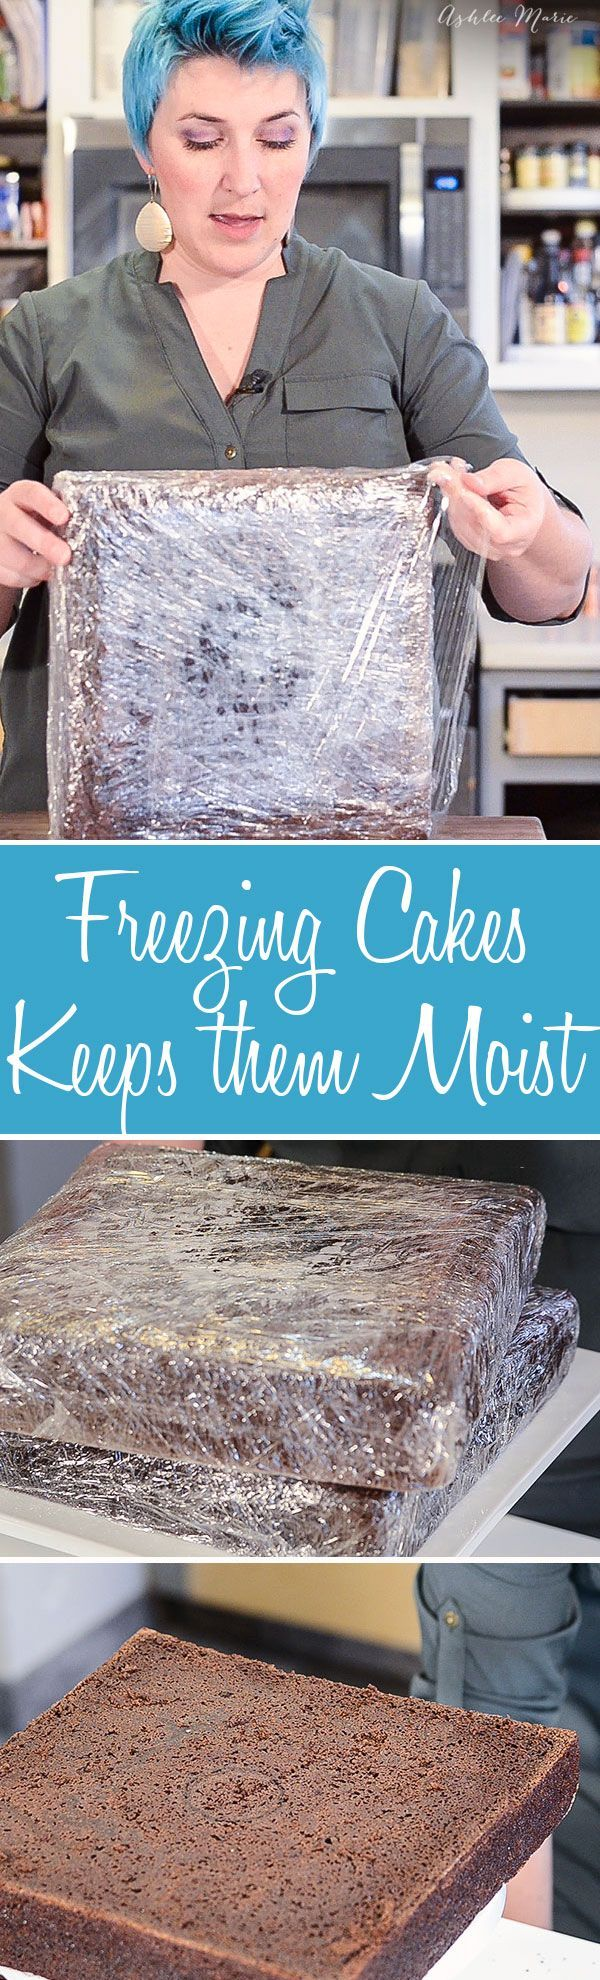 why freezing cakes keeps them moist and easier to work with For more cooking tips, click here ---> http://fabulesslyfrugal.com/?s=cooking+tips